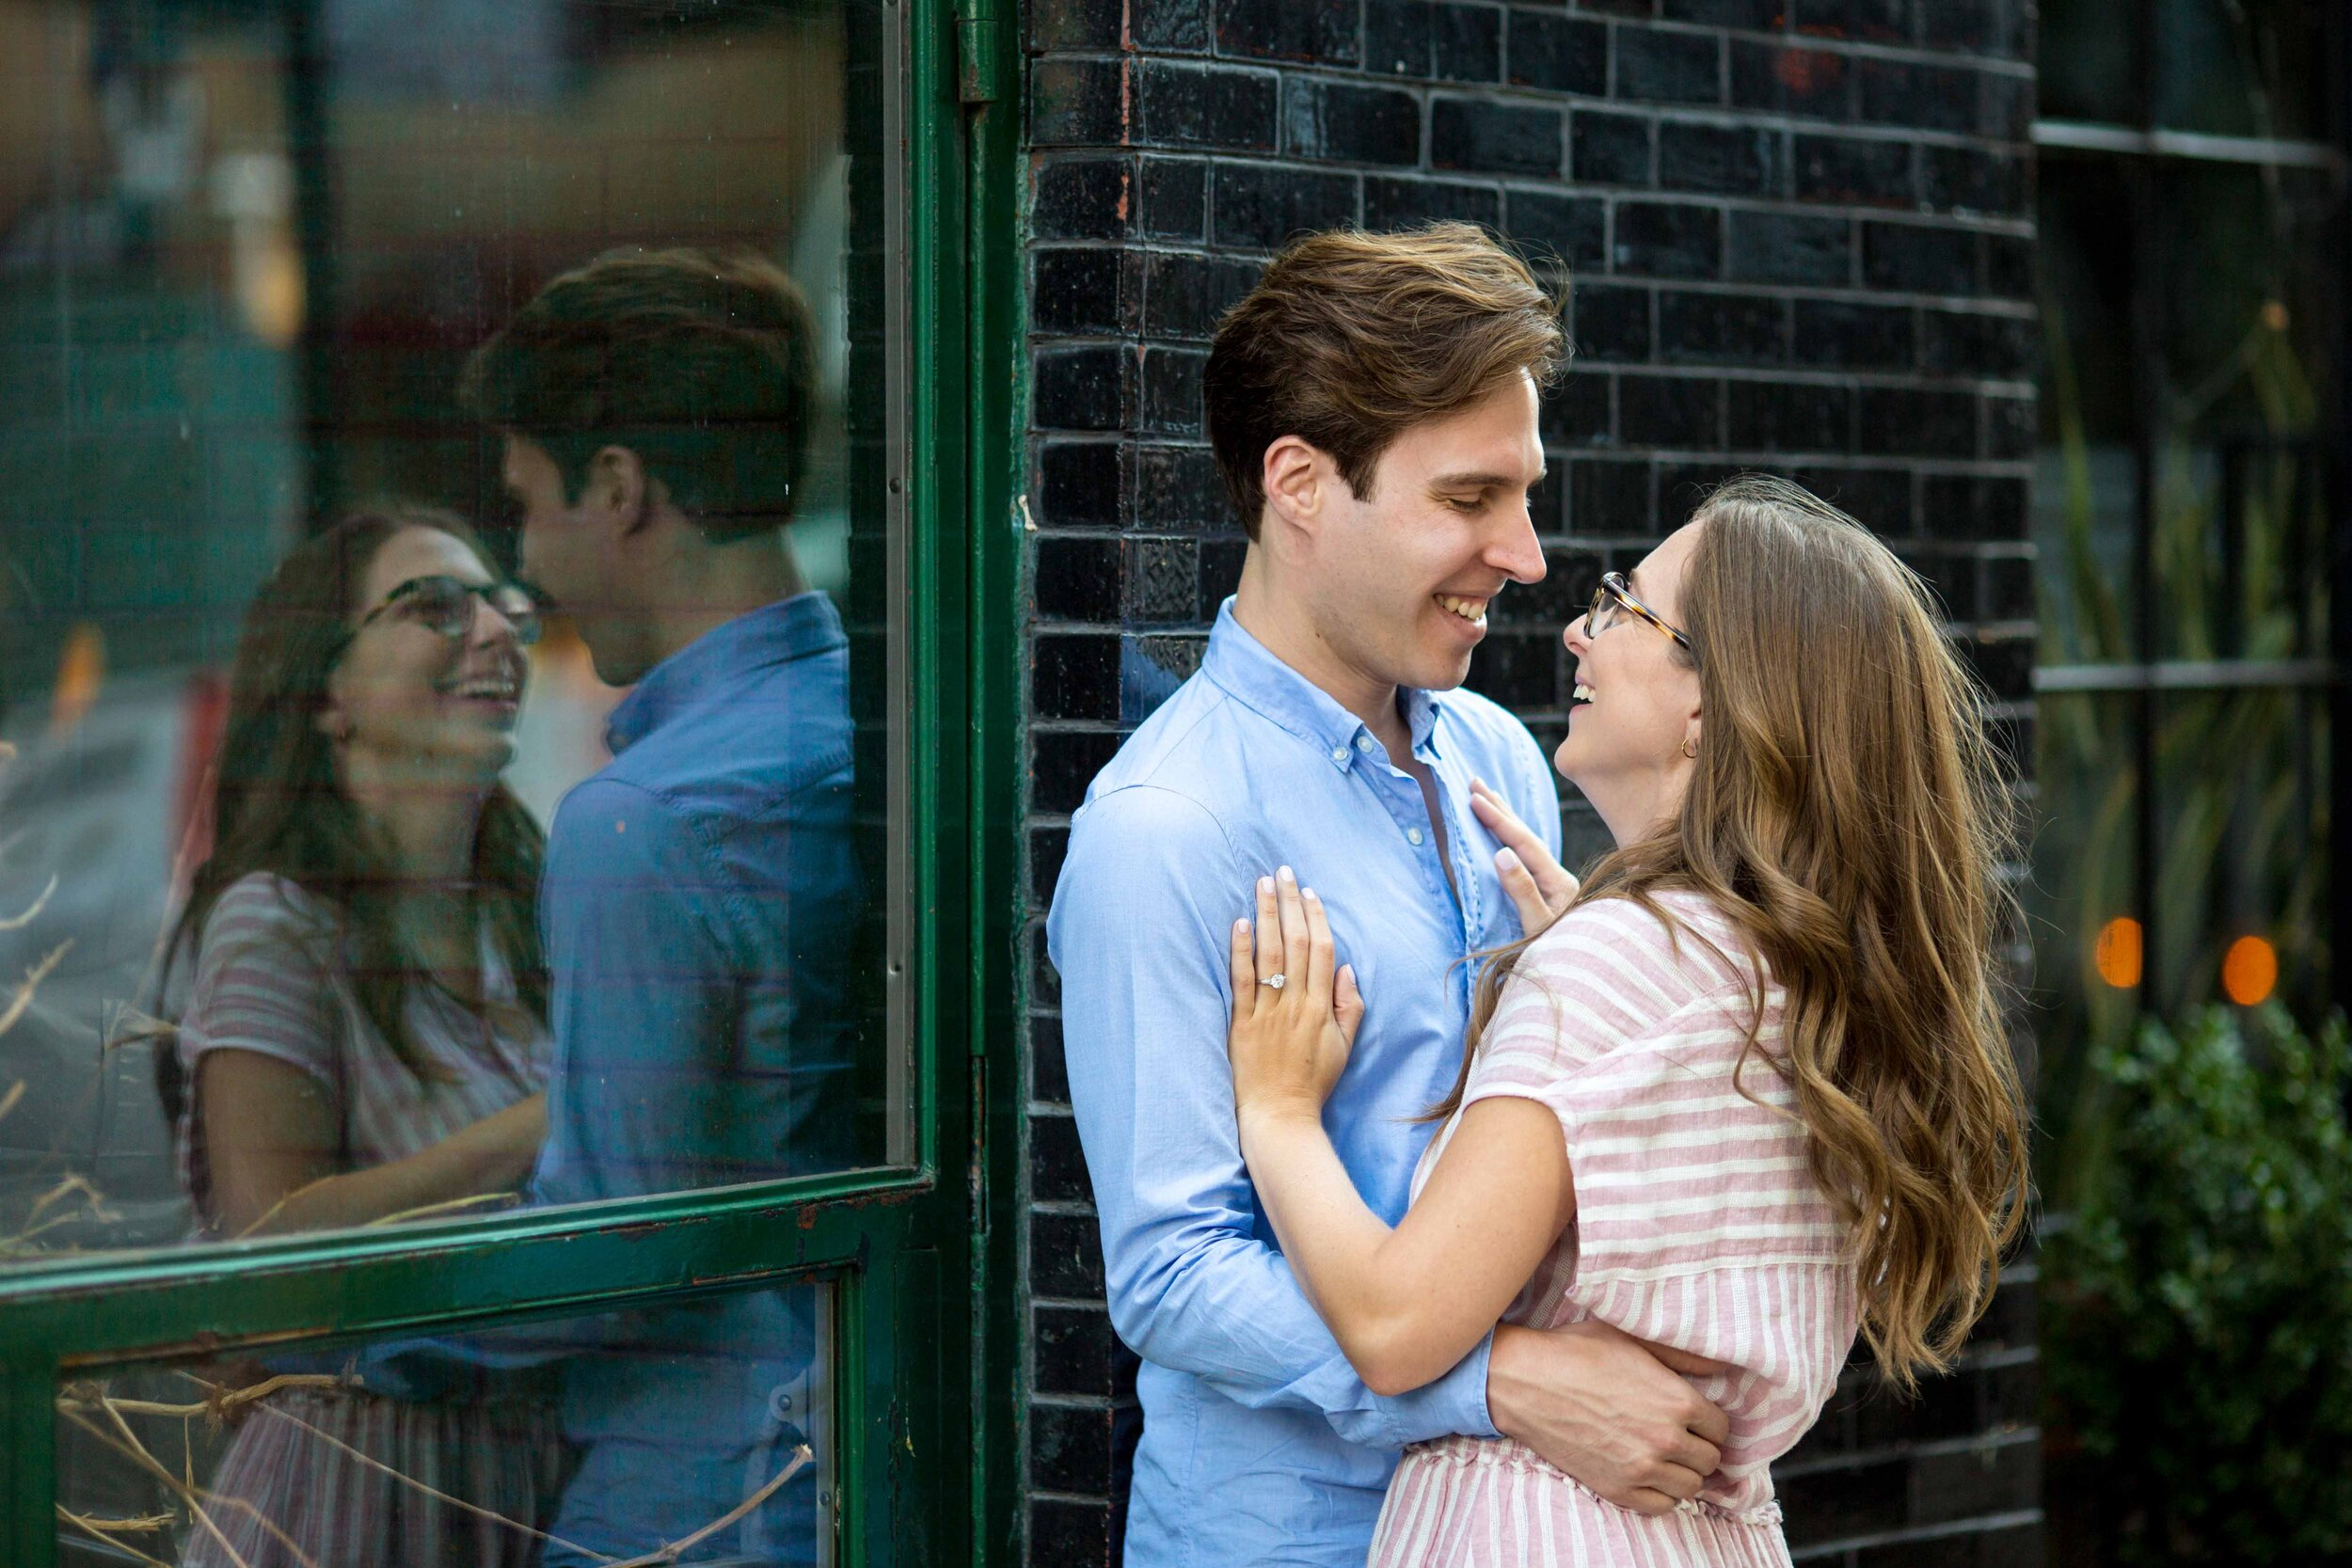 NYC Engagement Photographer New York City Wedding Photo Session Shoot West Village